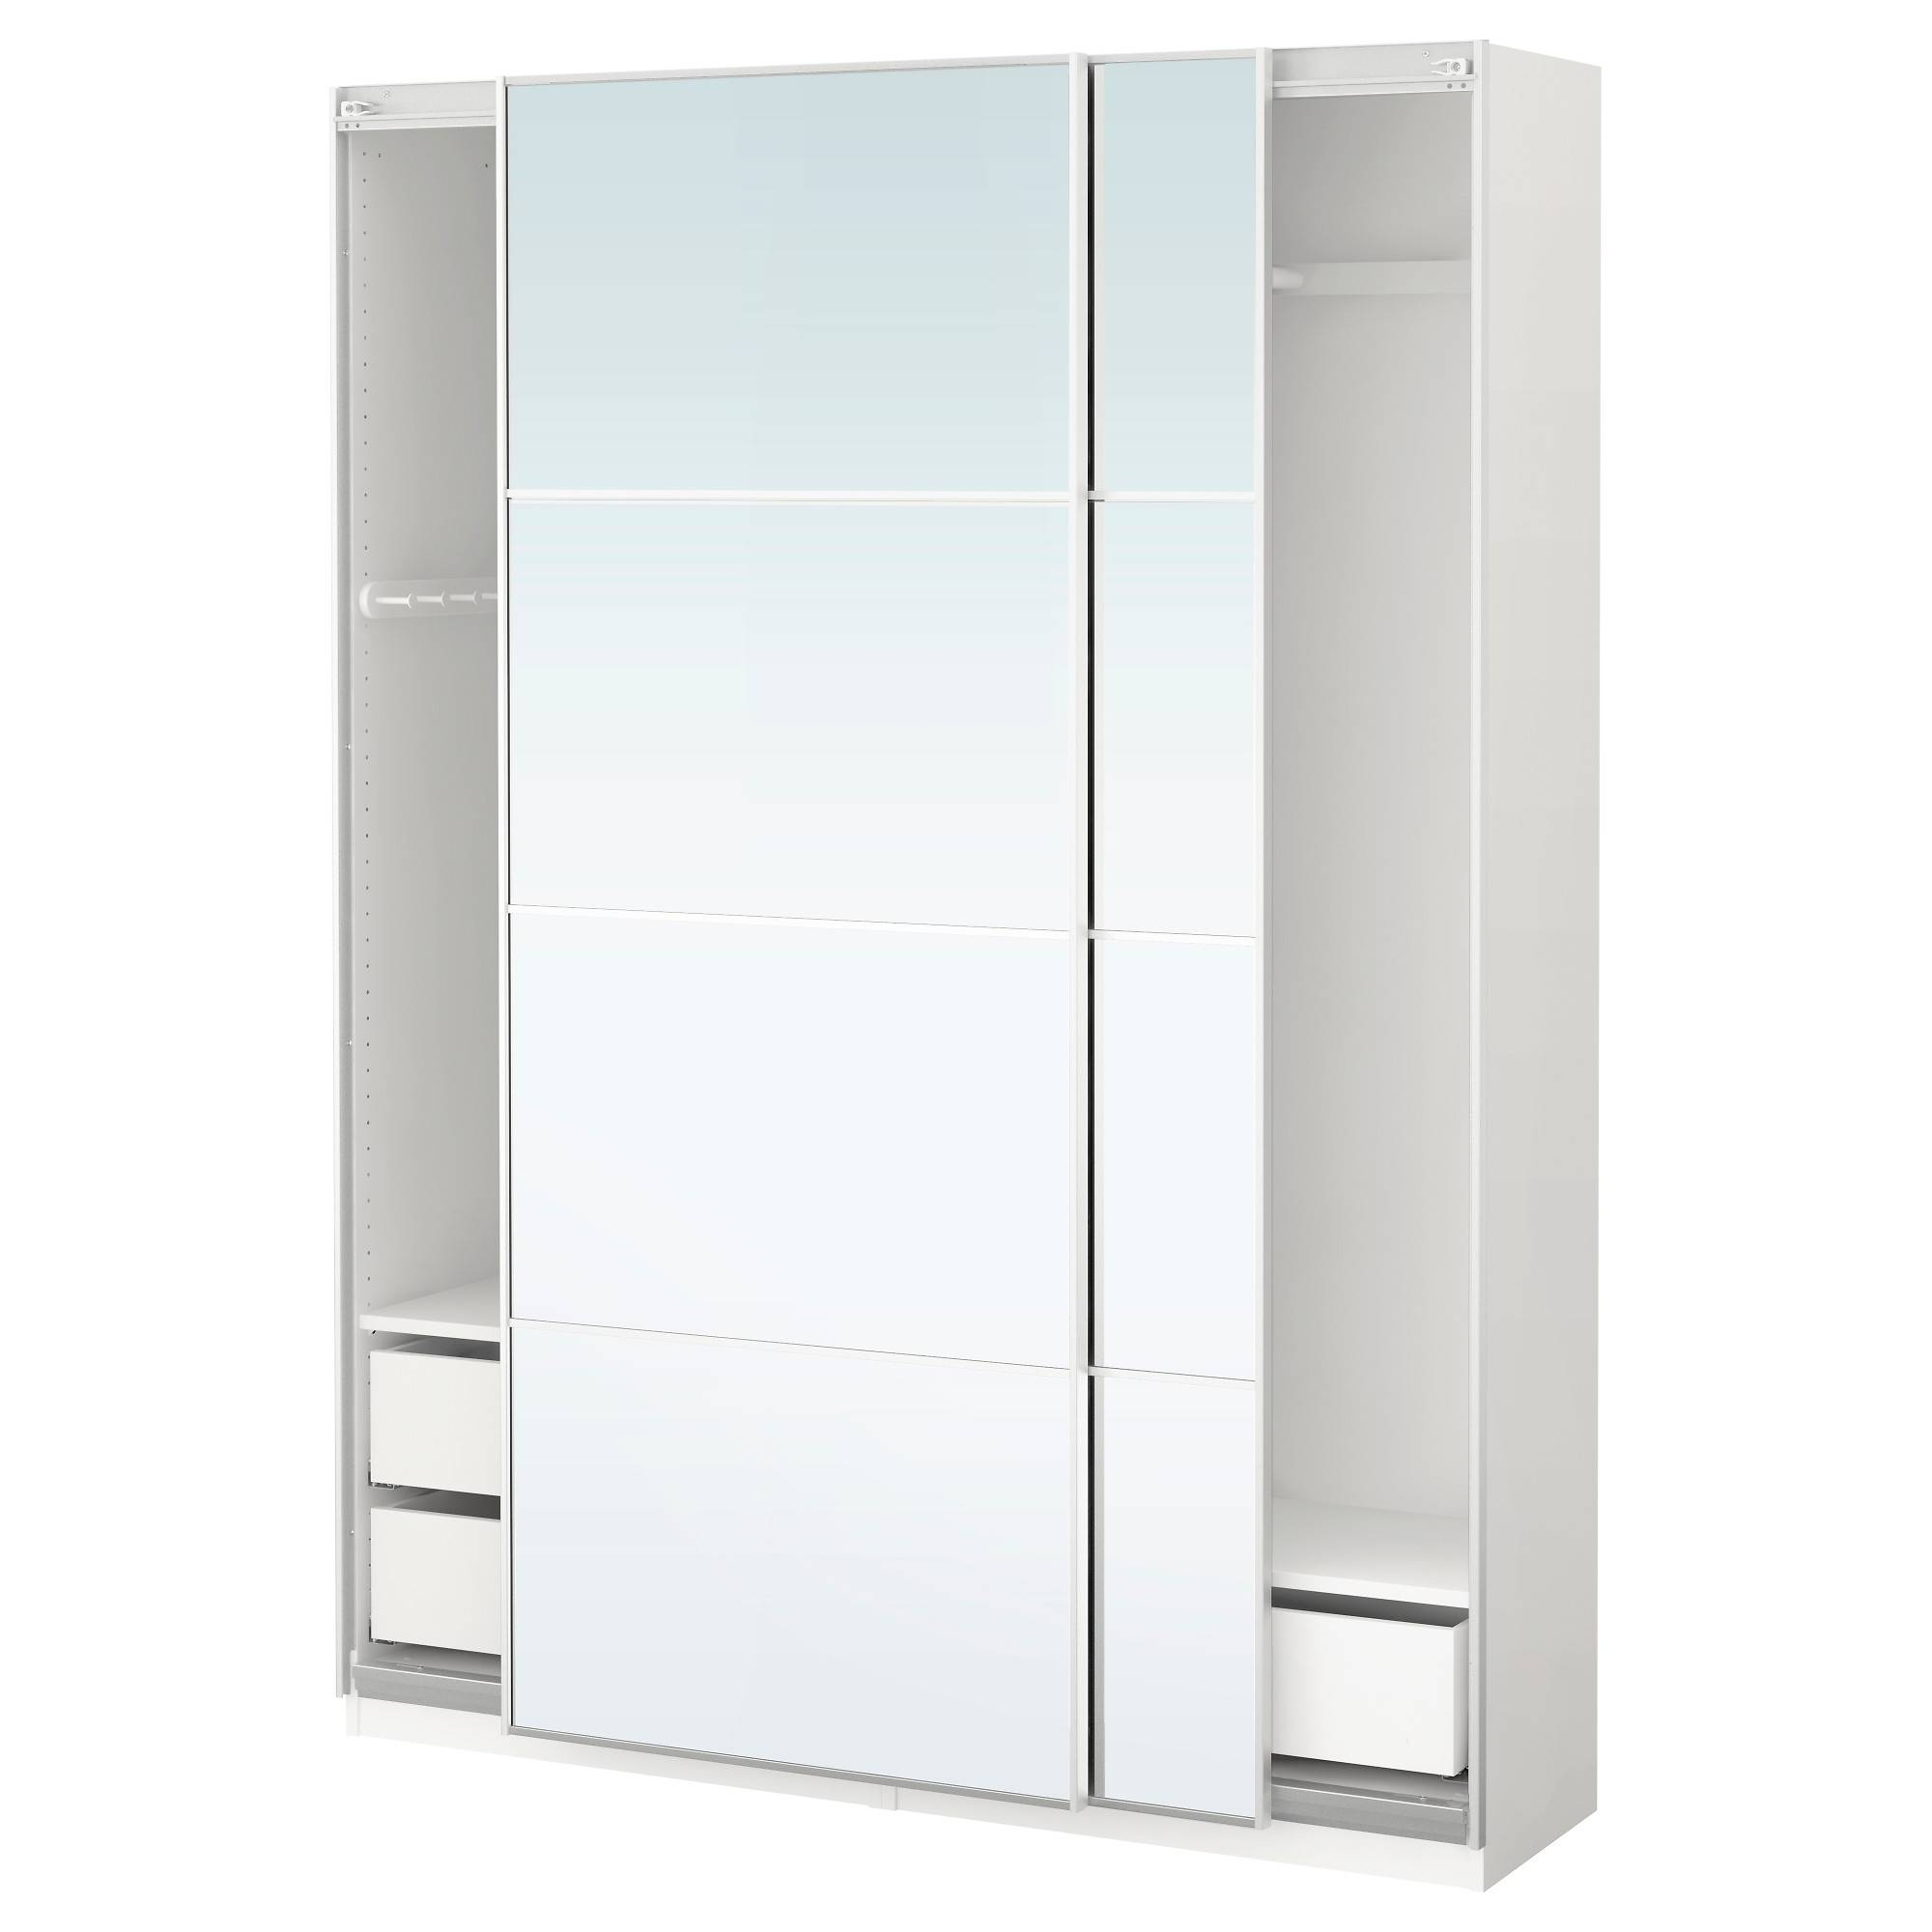 Pax Wardrobe White/auli Mirror Glass 150X44X201 Cm - Ikea throughout White Mirrored Wardrobes (Image 8 of 15)